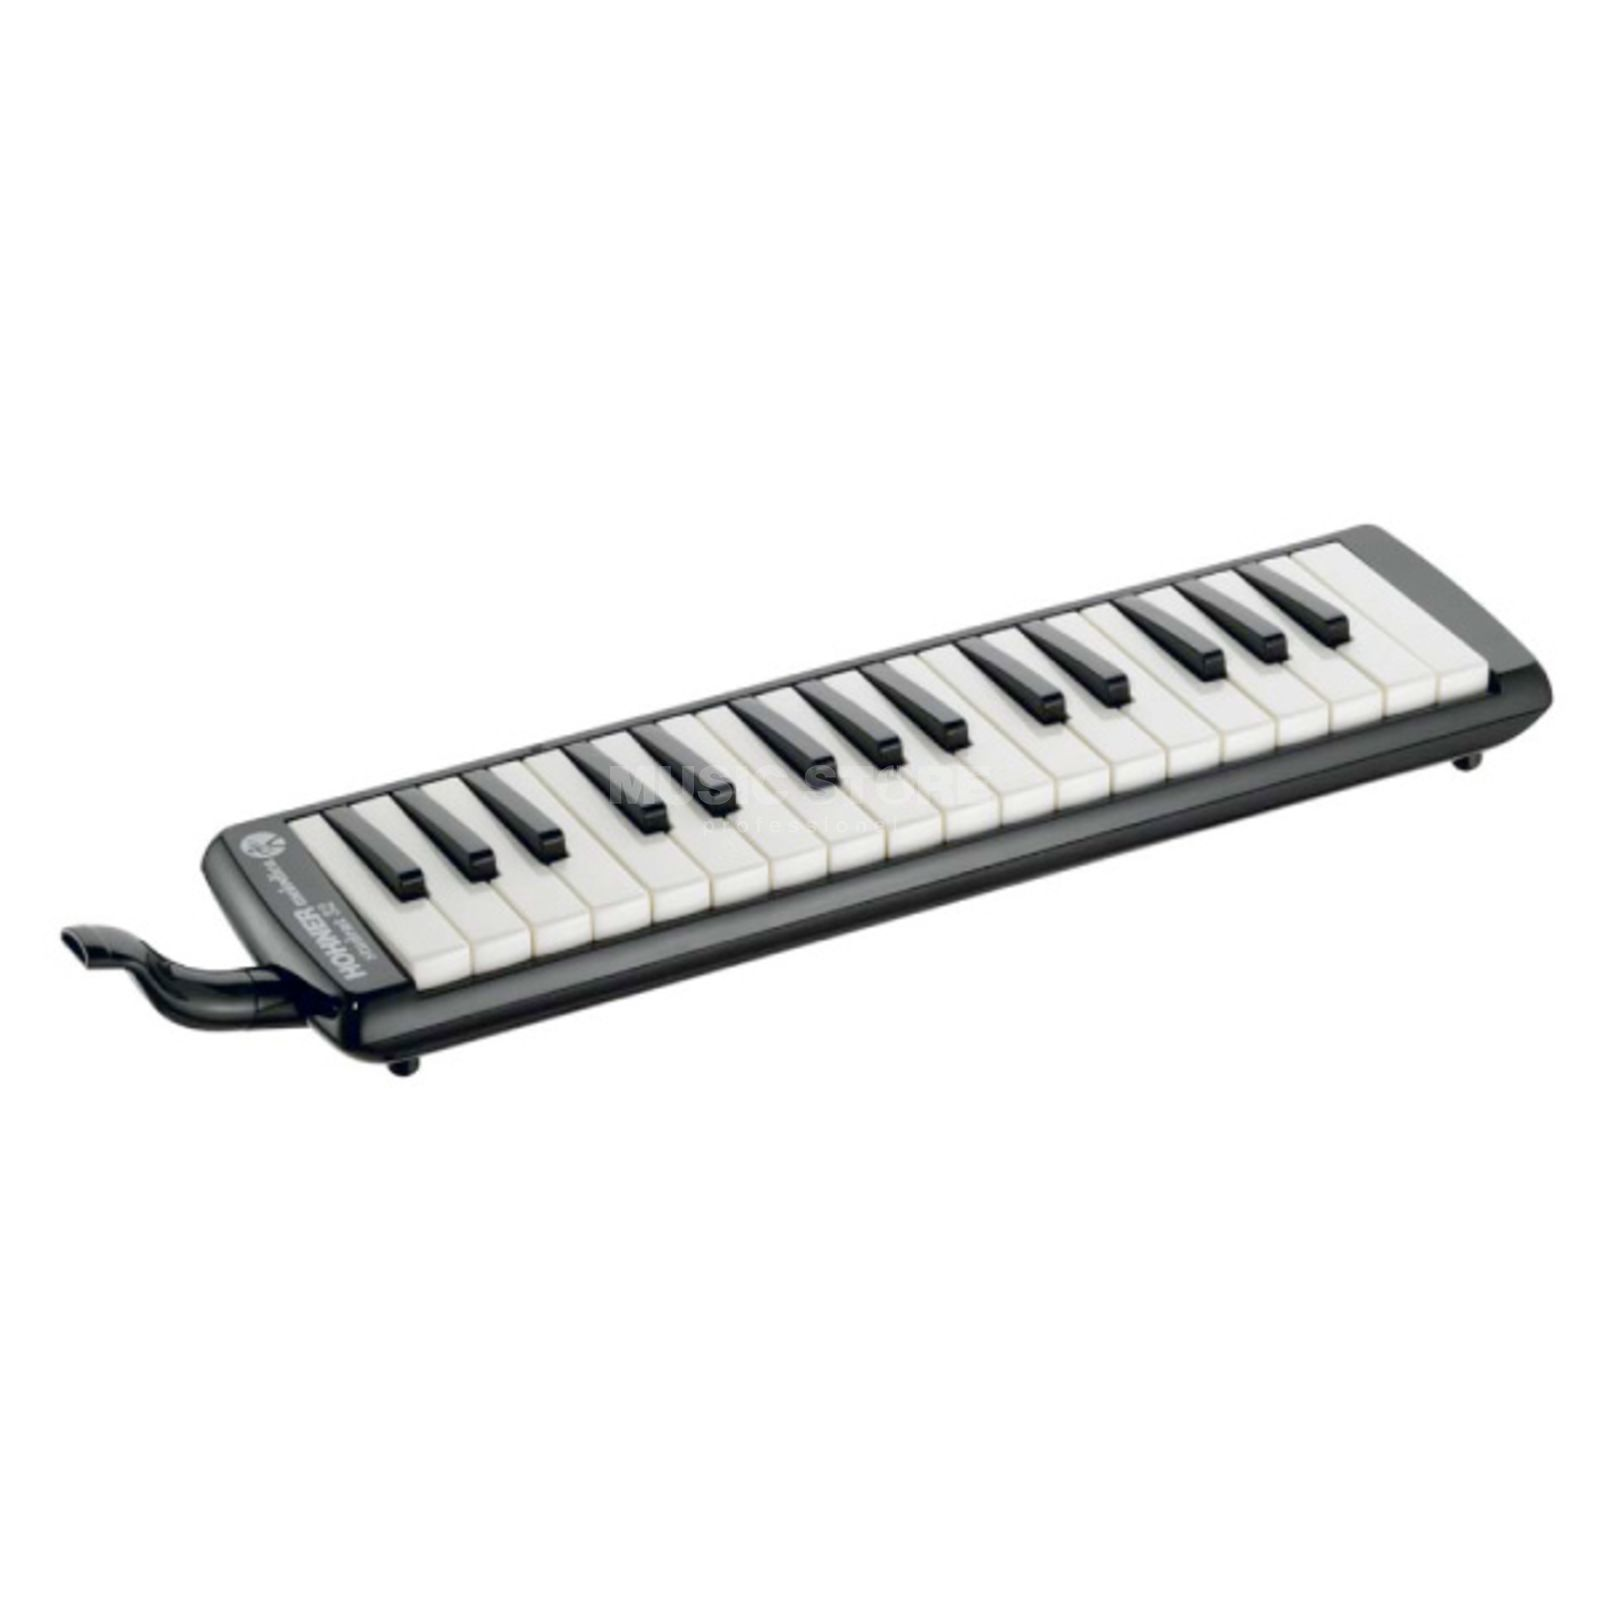 "Hohner ""Student 32"" Melodica Black Incl. Case and Accessories Изображение товара"